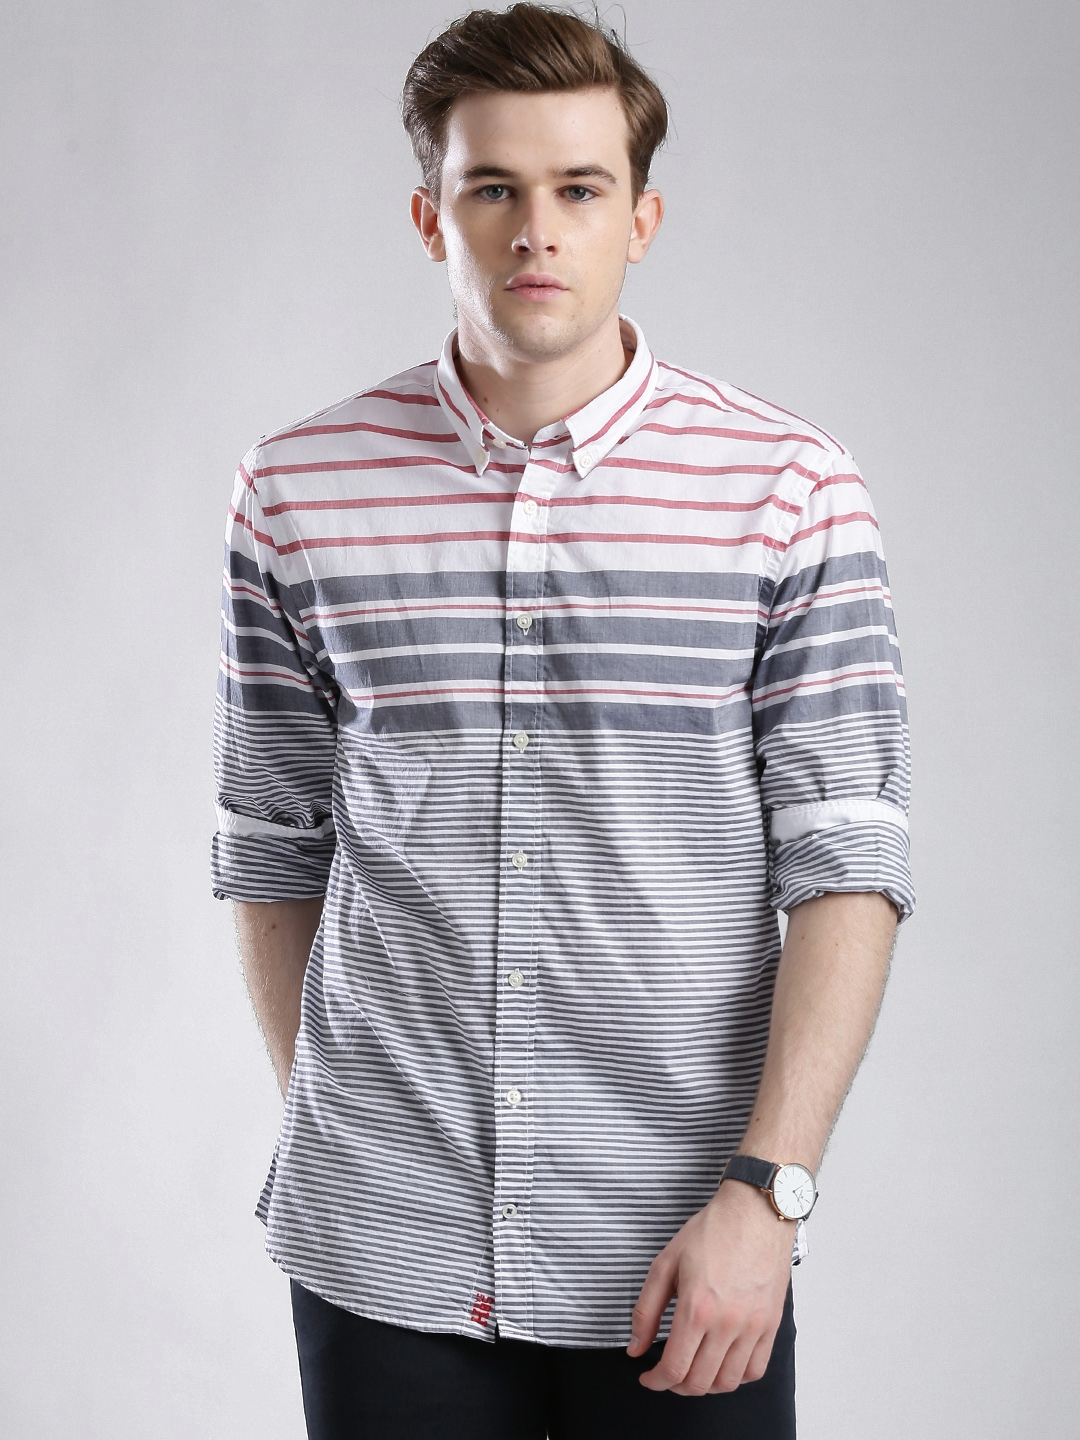 d24c73fe16 Buy Tommy Hilfiger Navy & White Striped New York Fit Casual Shirt ...